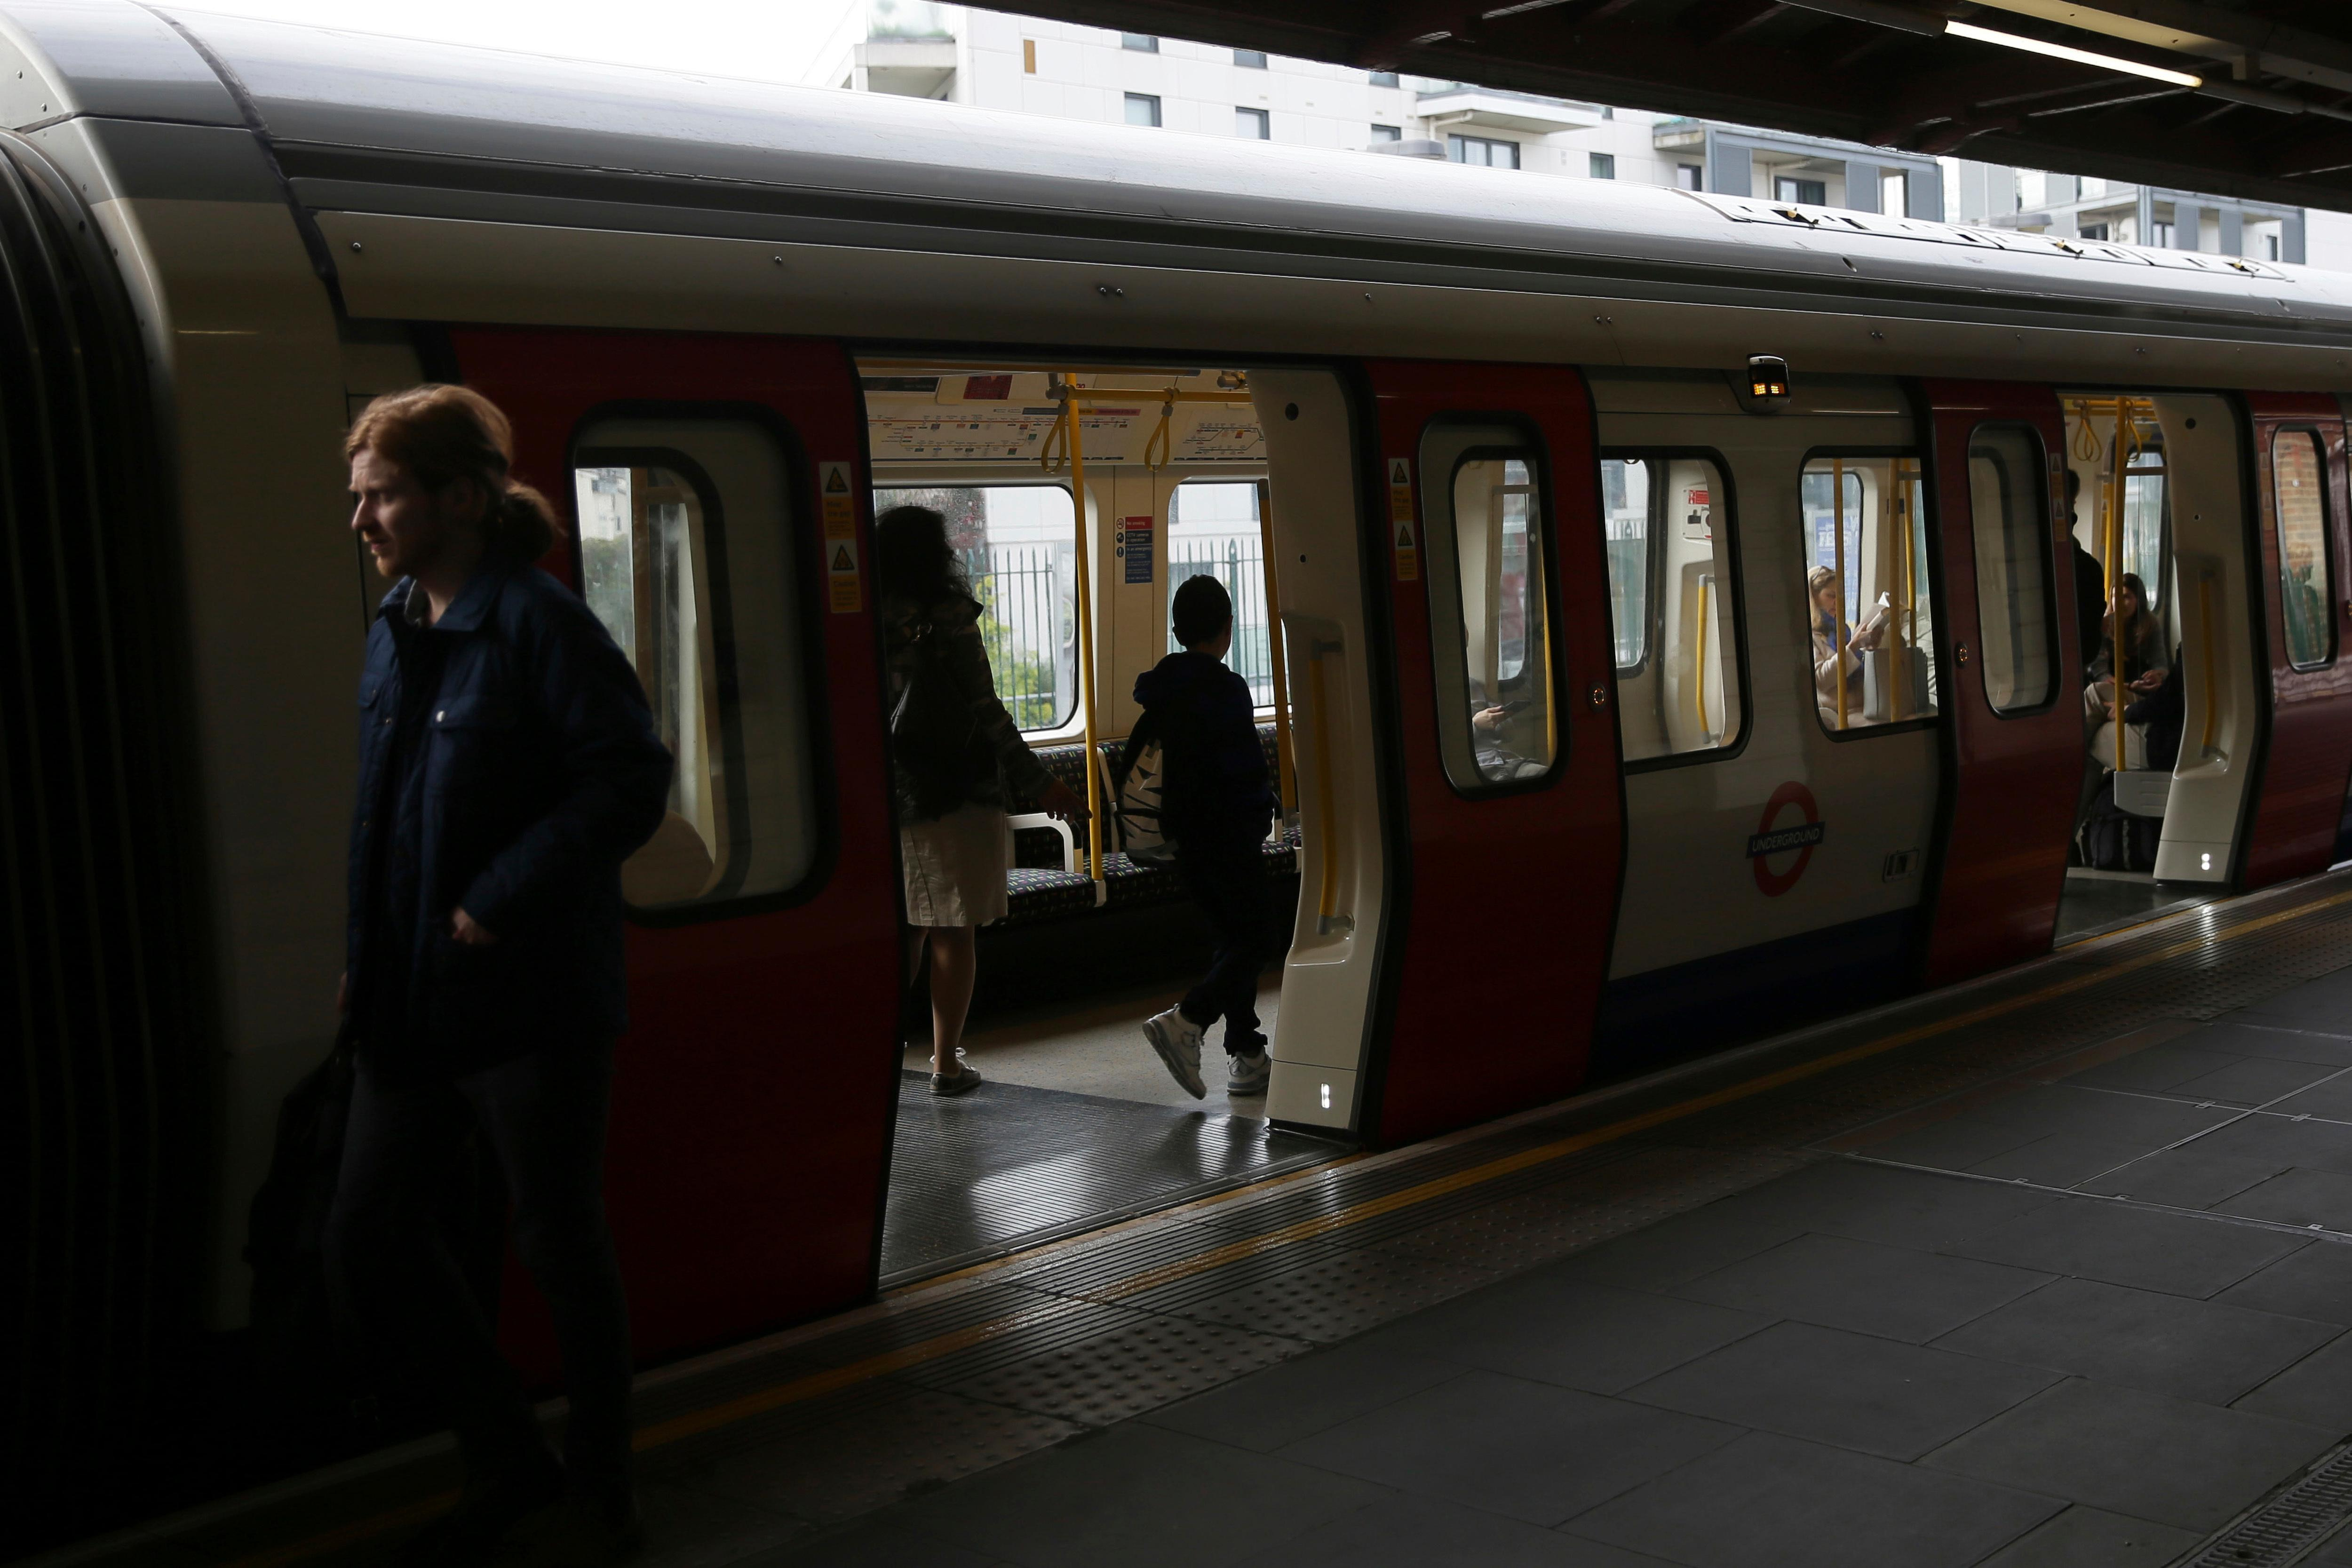 Passengers board a train at Parsons Green subway station after it was reopened following a terrorist attack on a train at the station yesterday in London, Saturday Sept. 16, 2017. British authorities are searching for suspects in the London subway blast that injured more than two dozen people as hundreds of soldiers are being deployed across the country. (AP Photo/Tim Ireland)